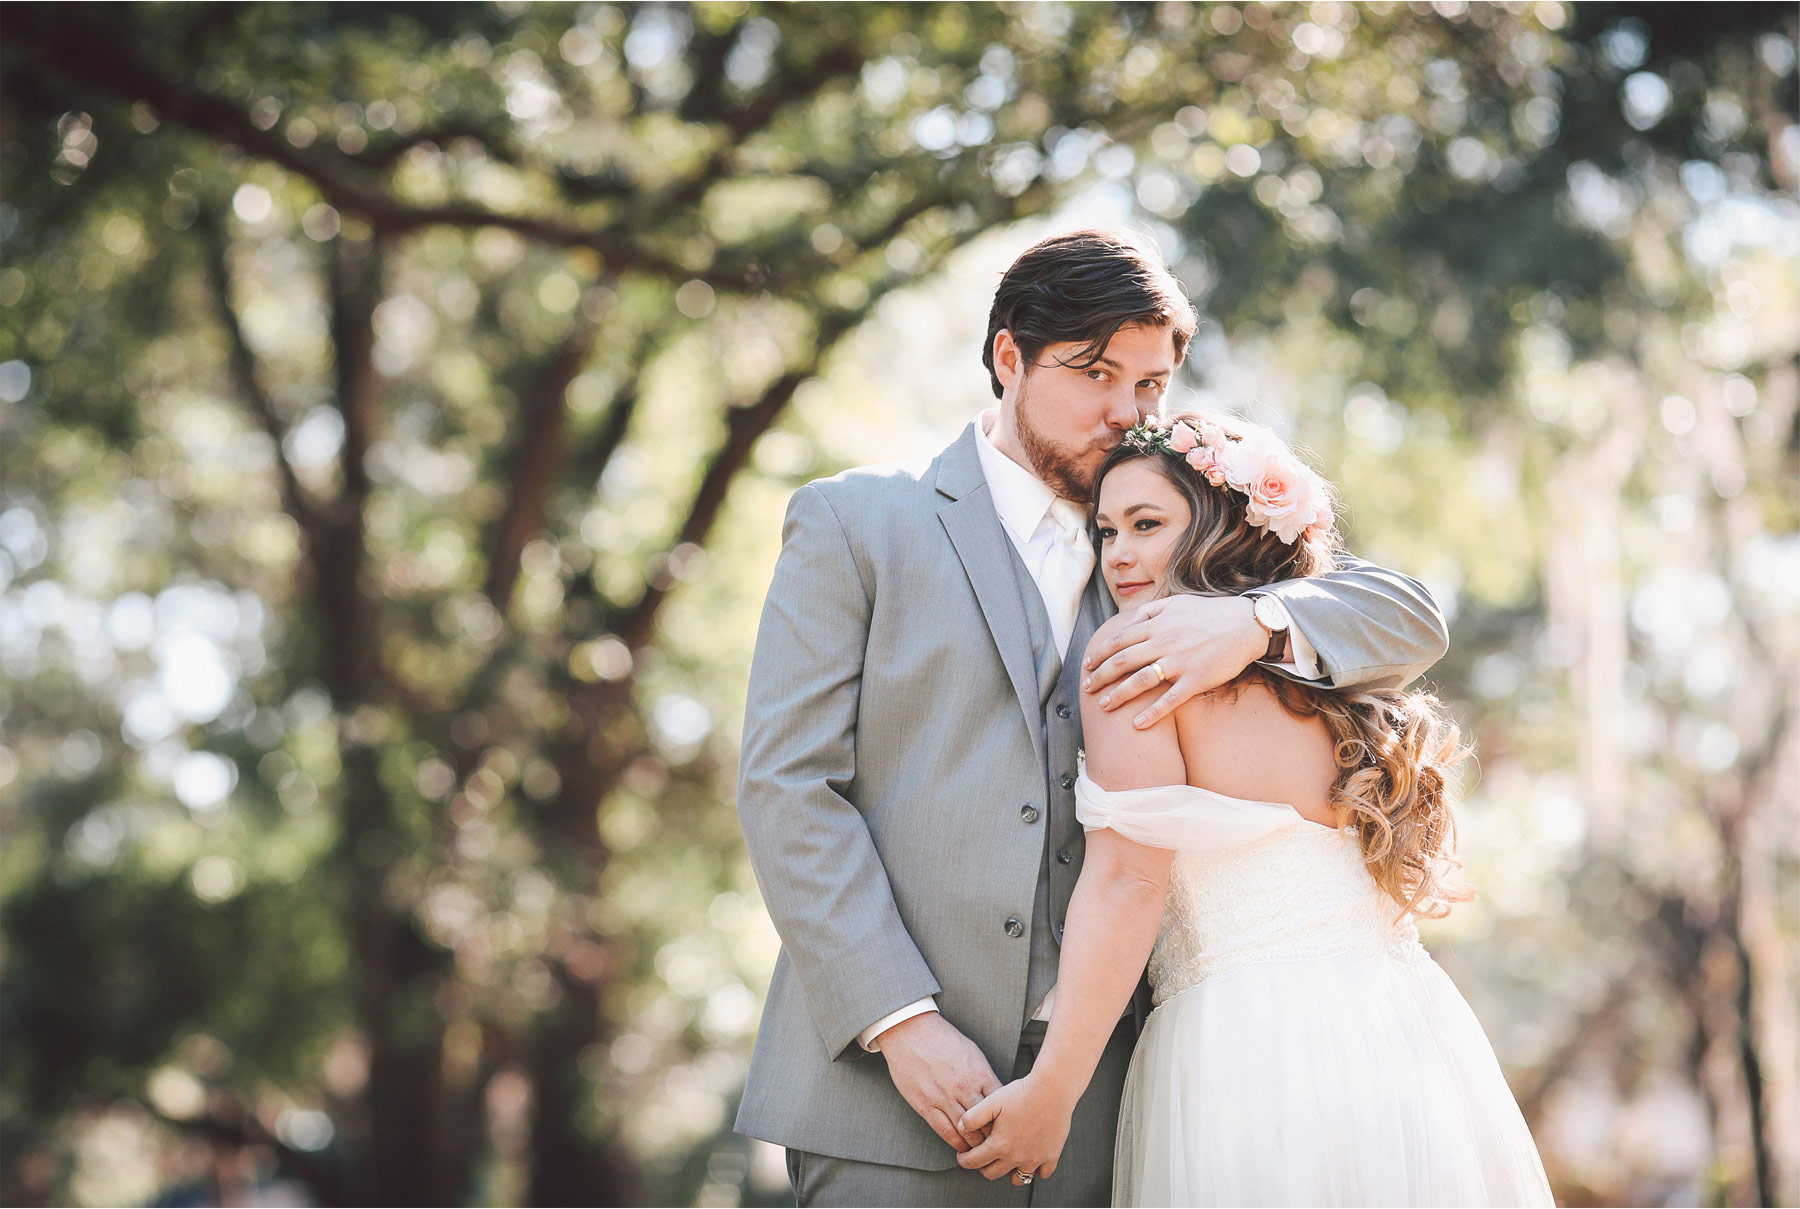 21-Brandon-Florida-Wedding-Photographer-by-Andrew-Vick-Photography-Casa-Lantana-Spring-Bride-Groom-Kiss-Flower-Crown-Embrace-Hug-Vintage-Kristianna-and-Ben.jpg